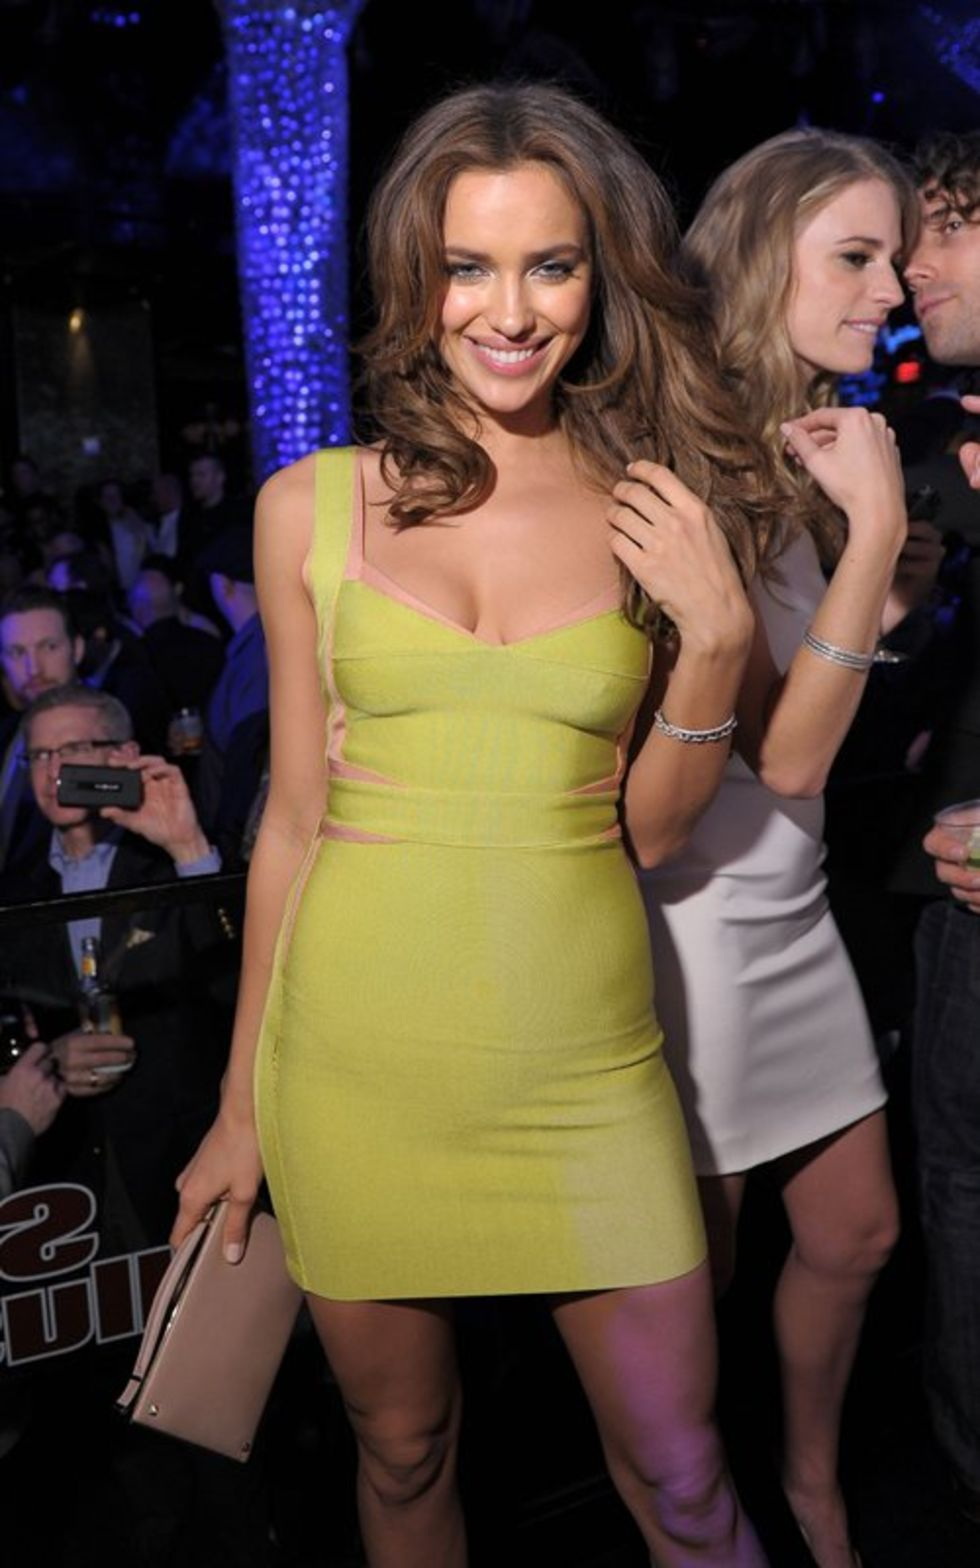 Irina Shayk 2011 : irina-shayk-at-the-club-si-swimsuit-party-in-las-vegas-09